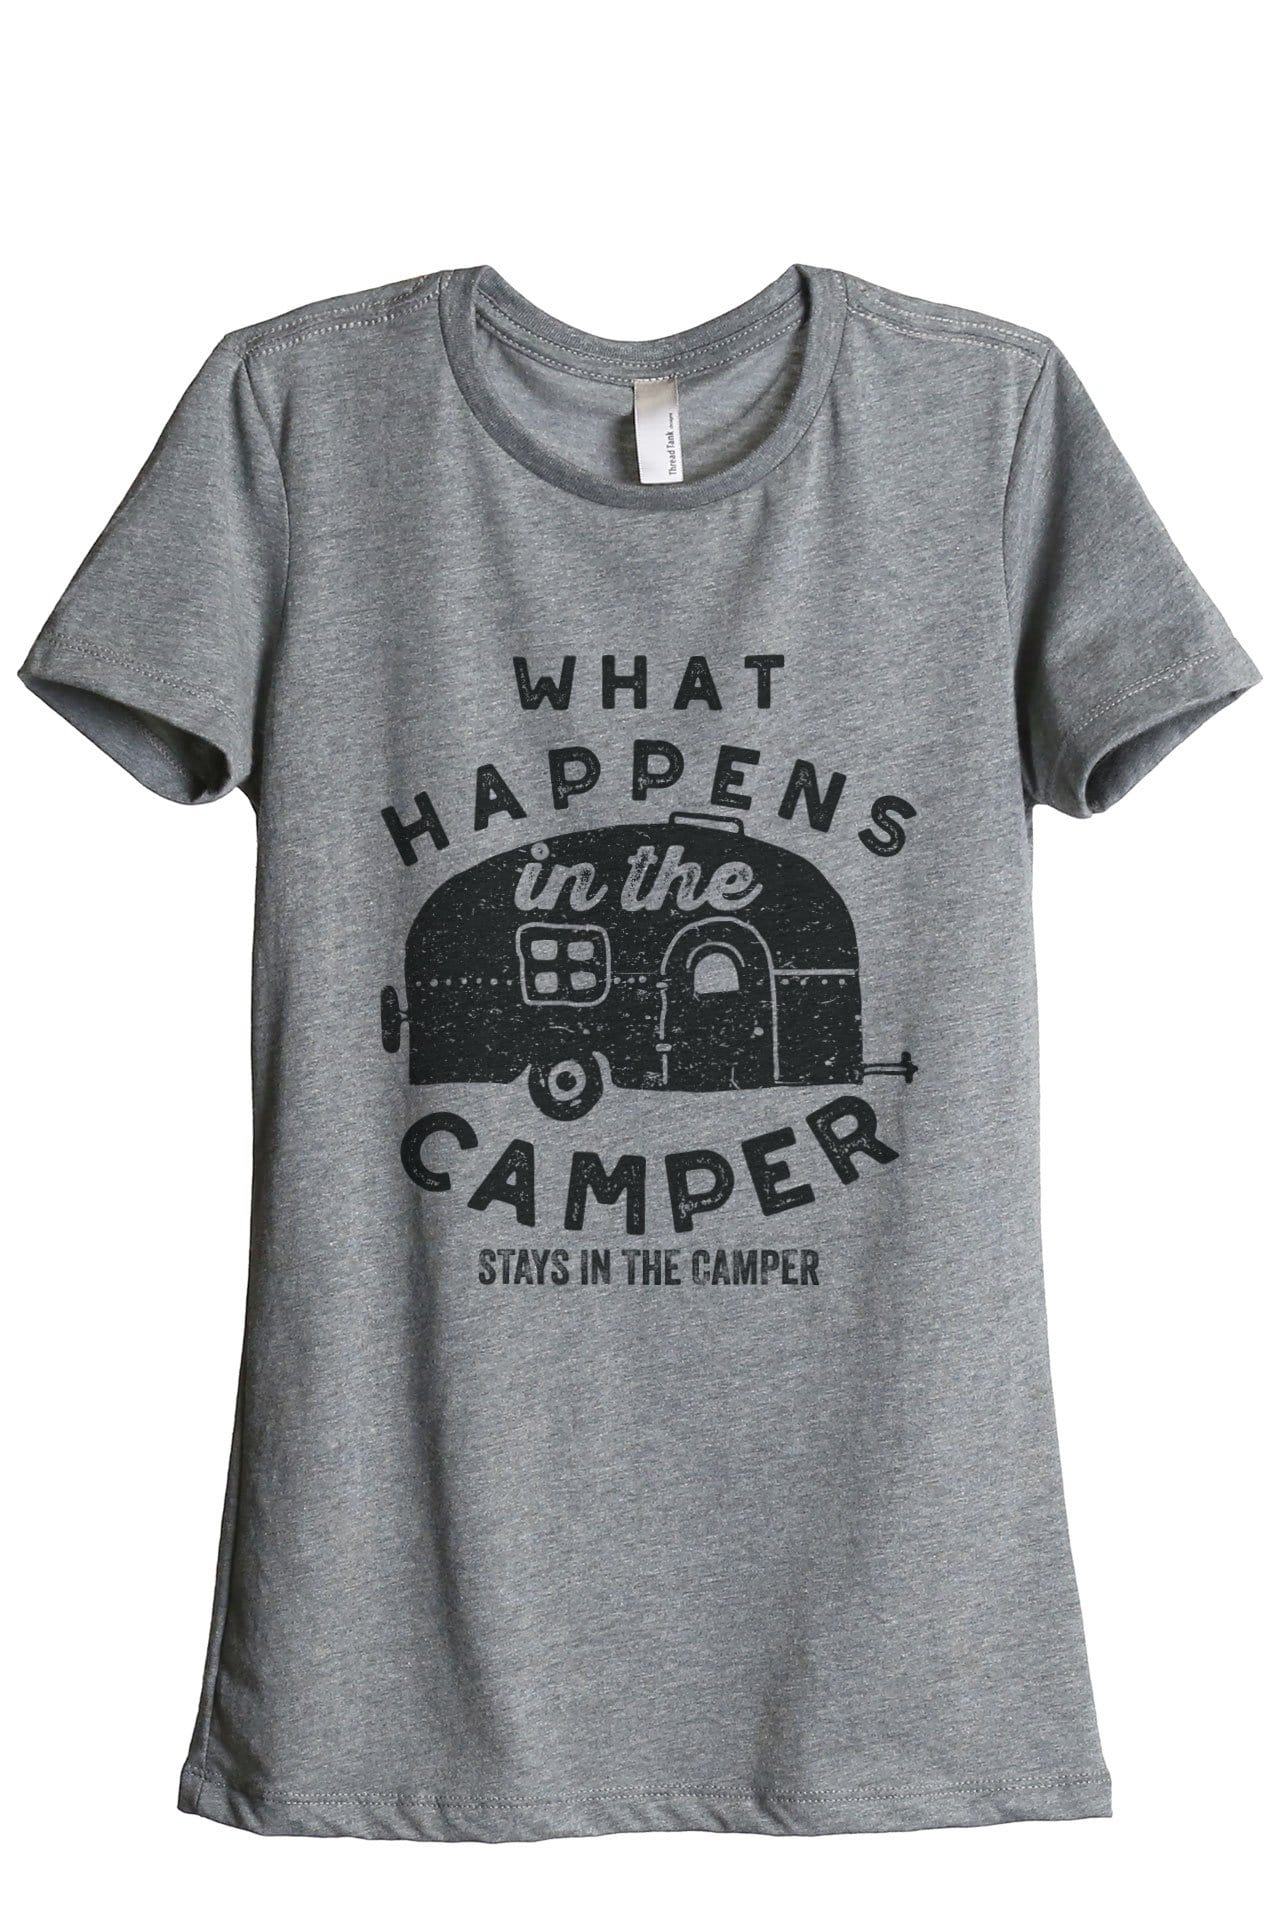 What Happens In The Camper Stays In The Camper Women Heather Grey Relaxed Crew T-Shirt Tee Top